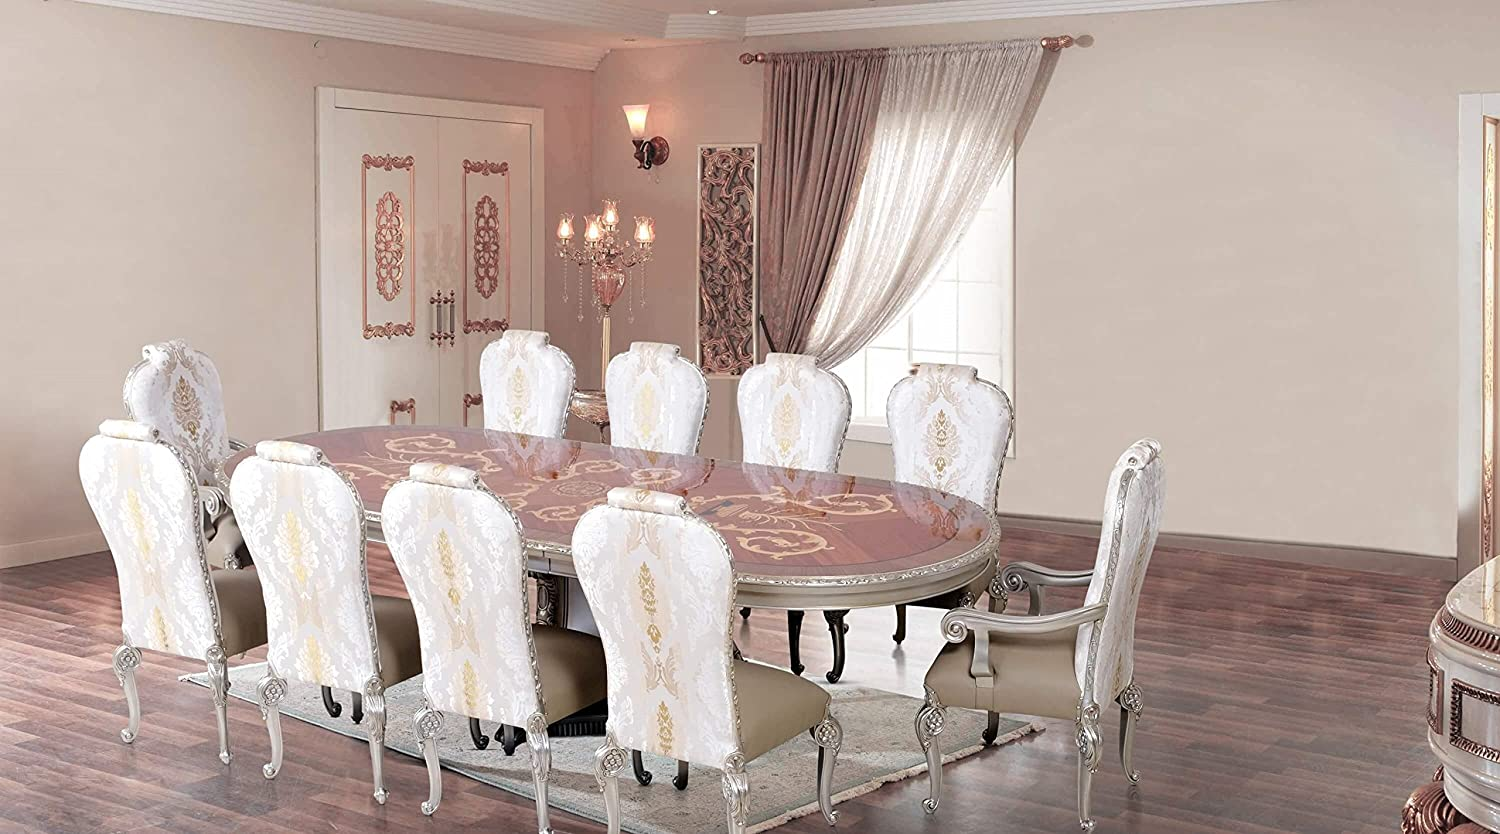 Amazon Com European Furniture 11 Pieces Bellagio Luxury Dining Set Table Chair Sets